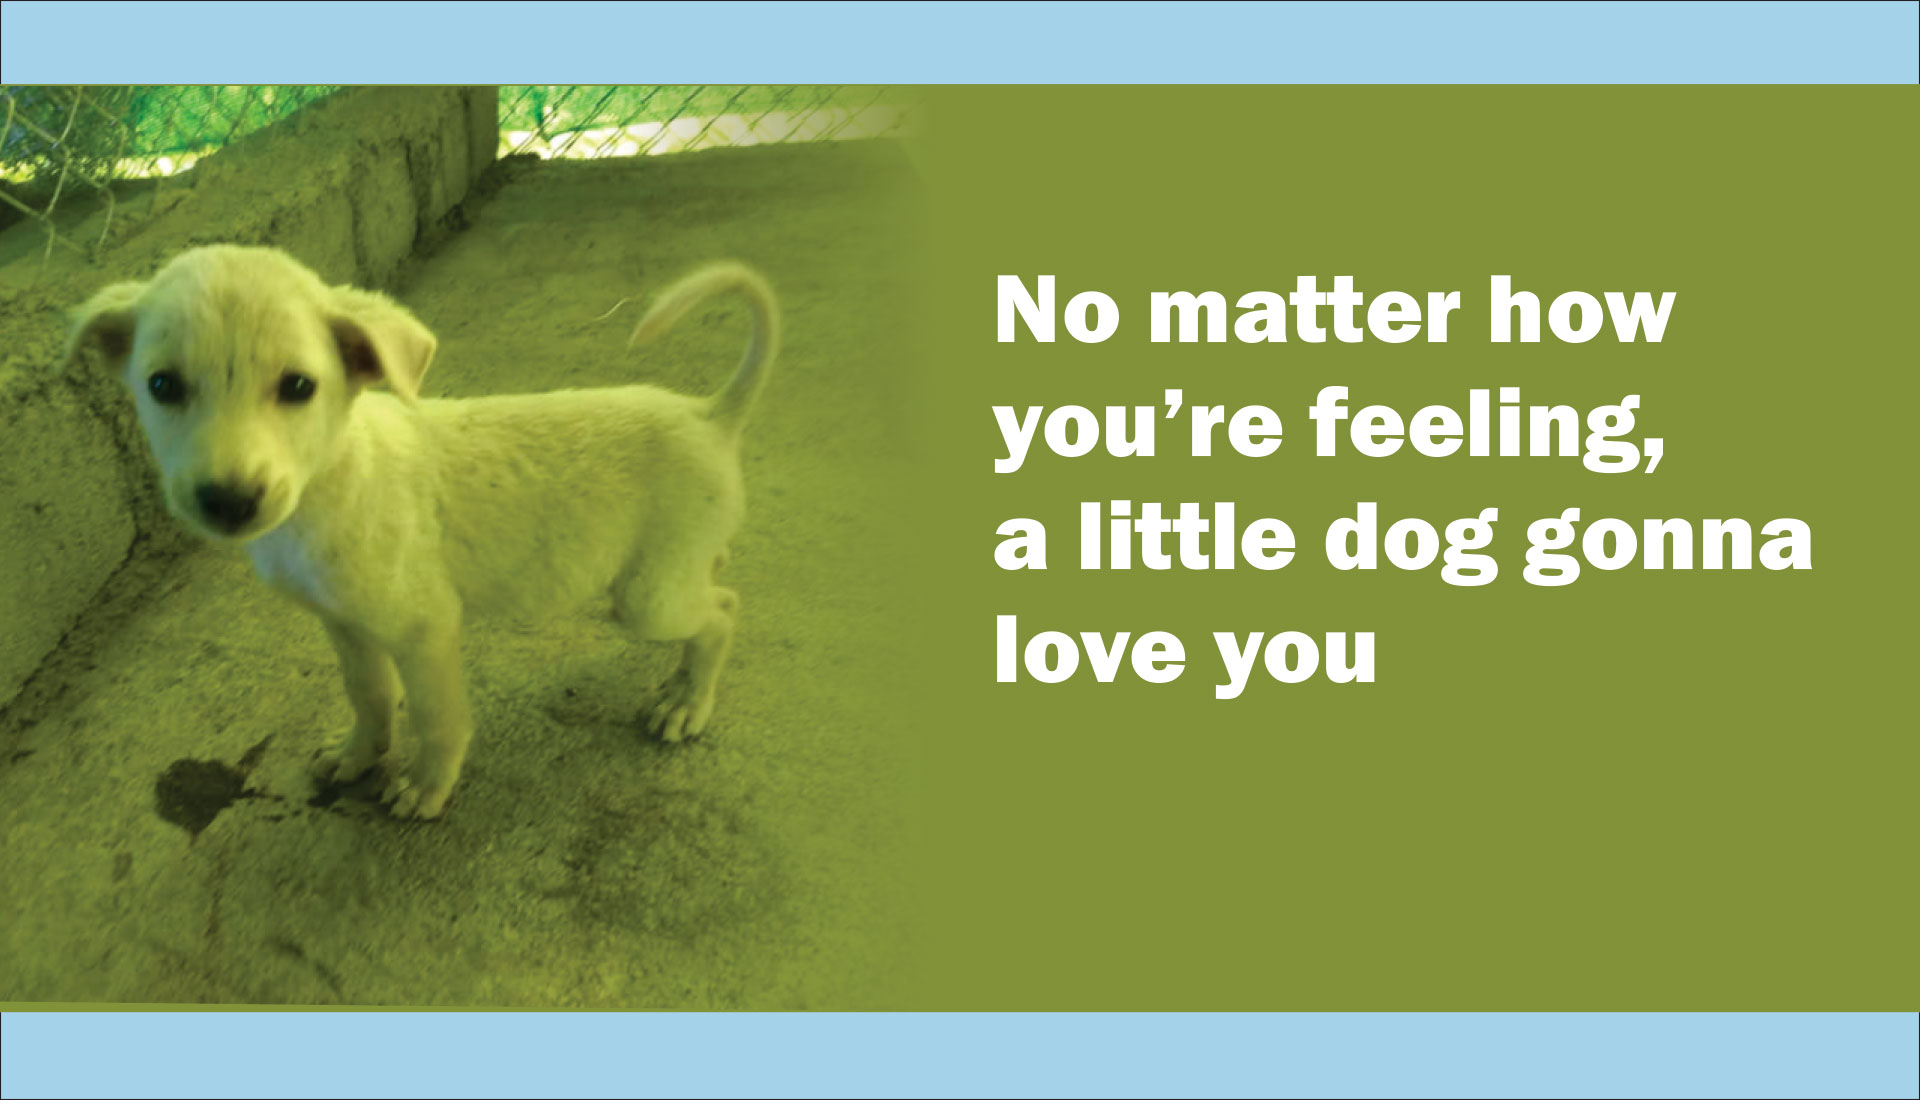 No matter how you're feeling, a little dog gonna love you